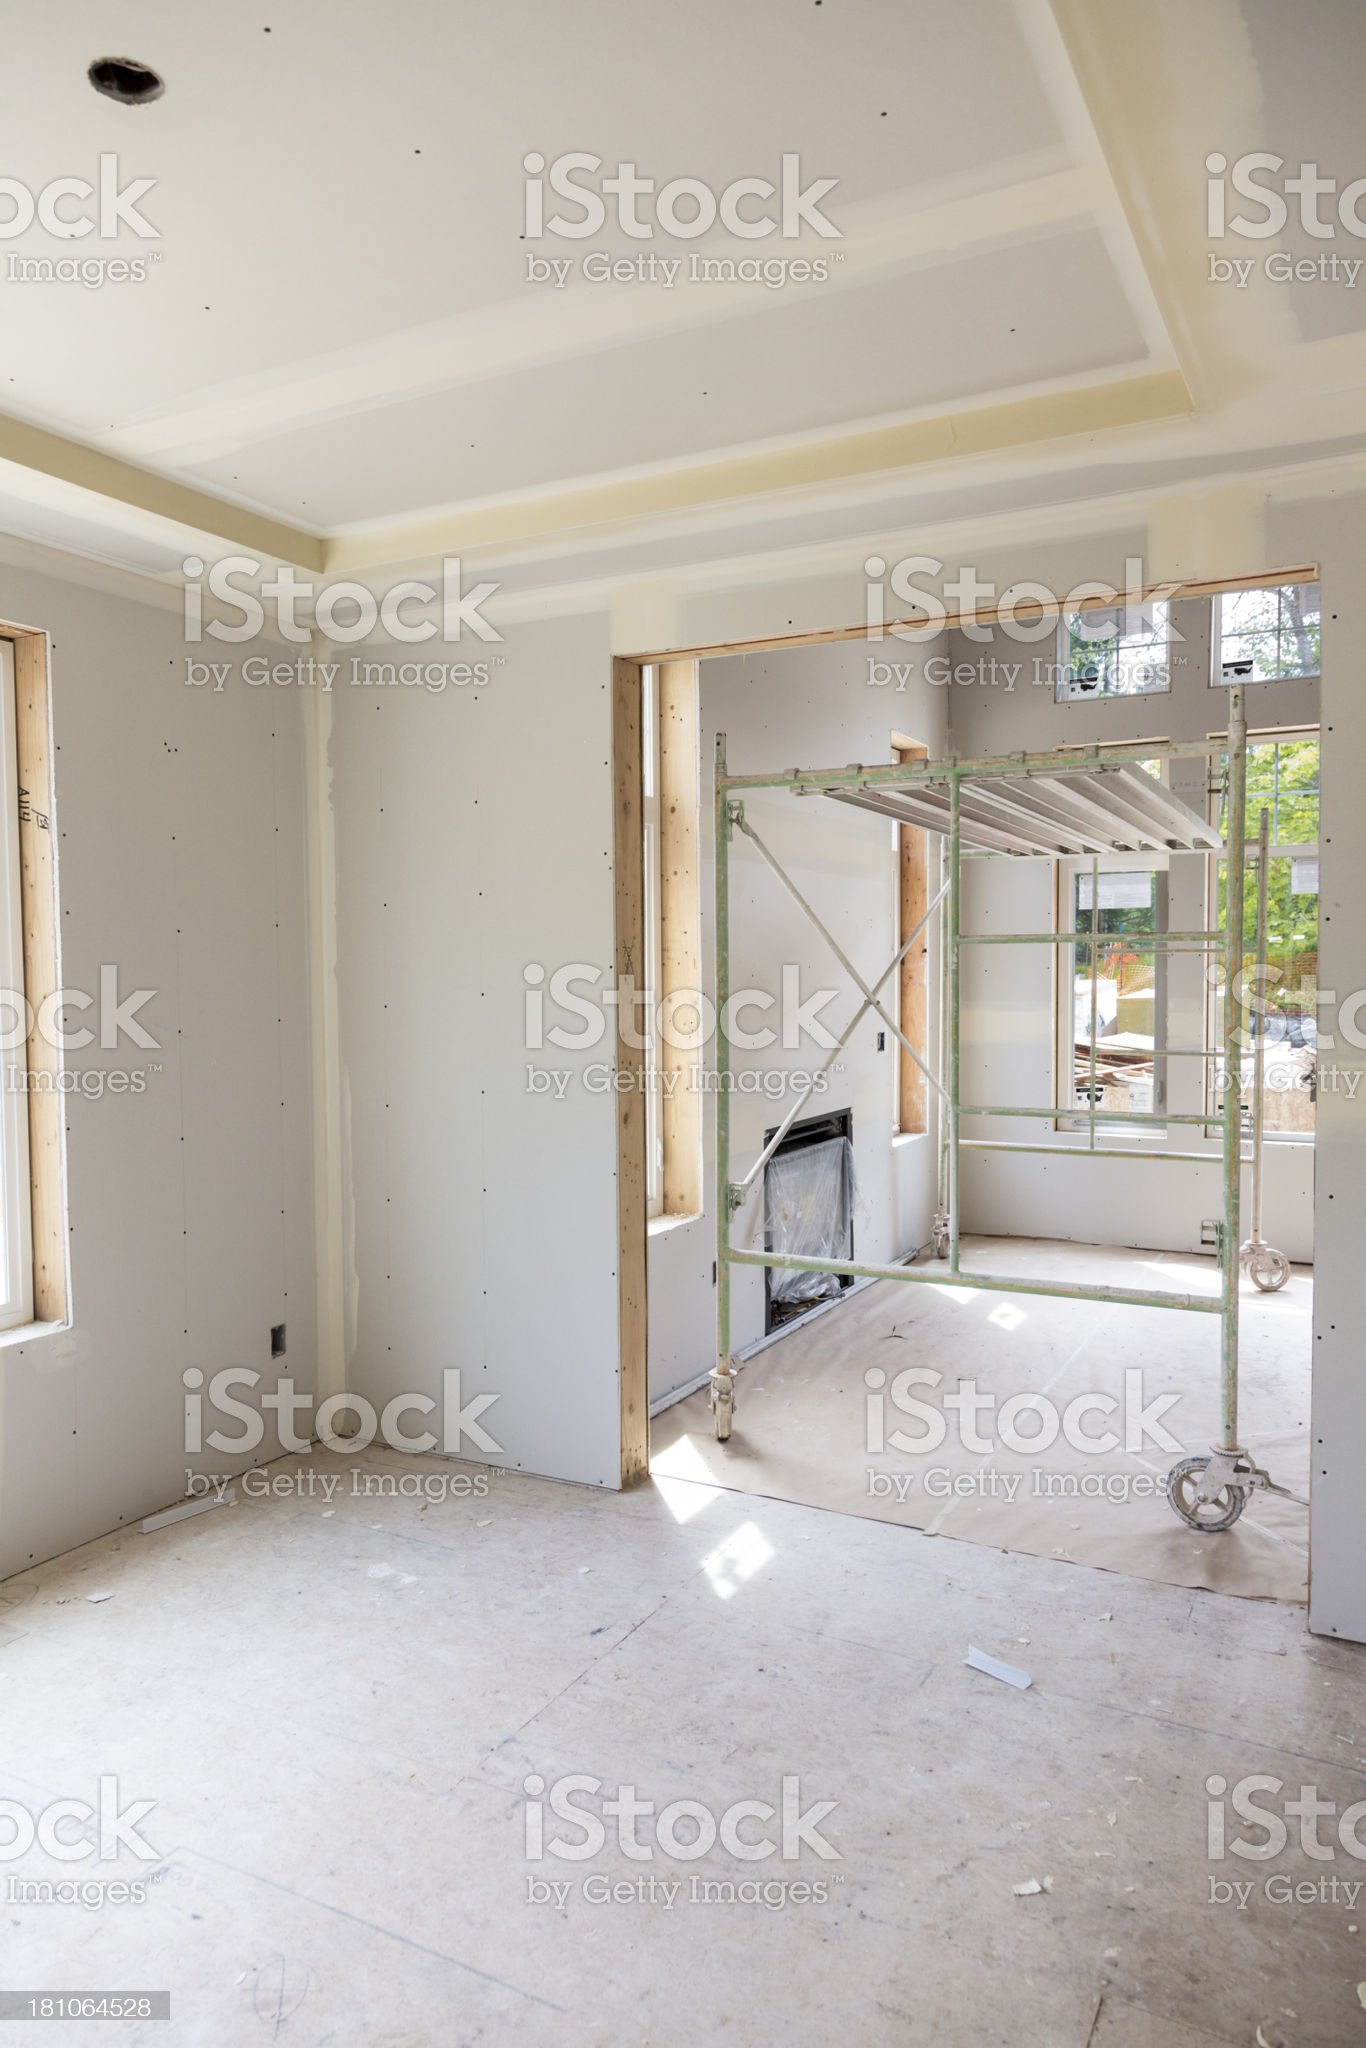 Drywall installation in a new home contruction royalty-free stock photo